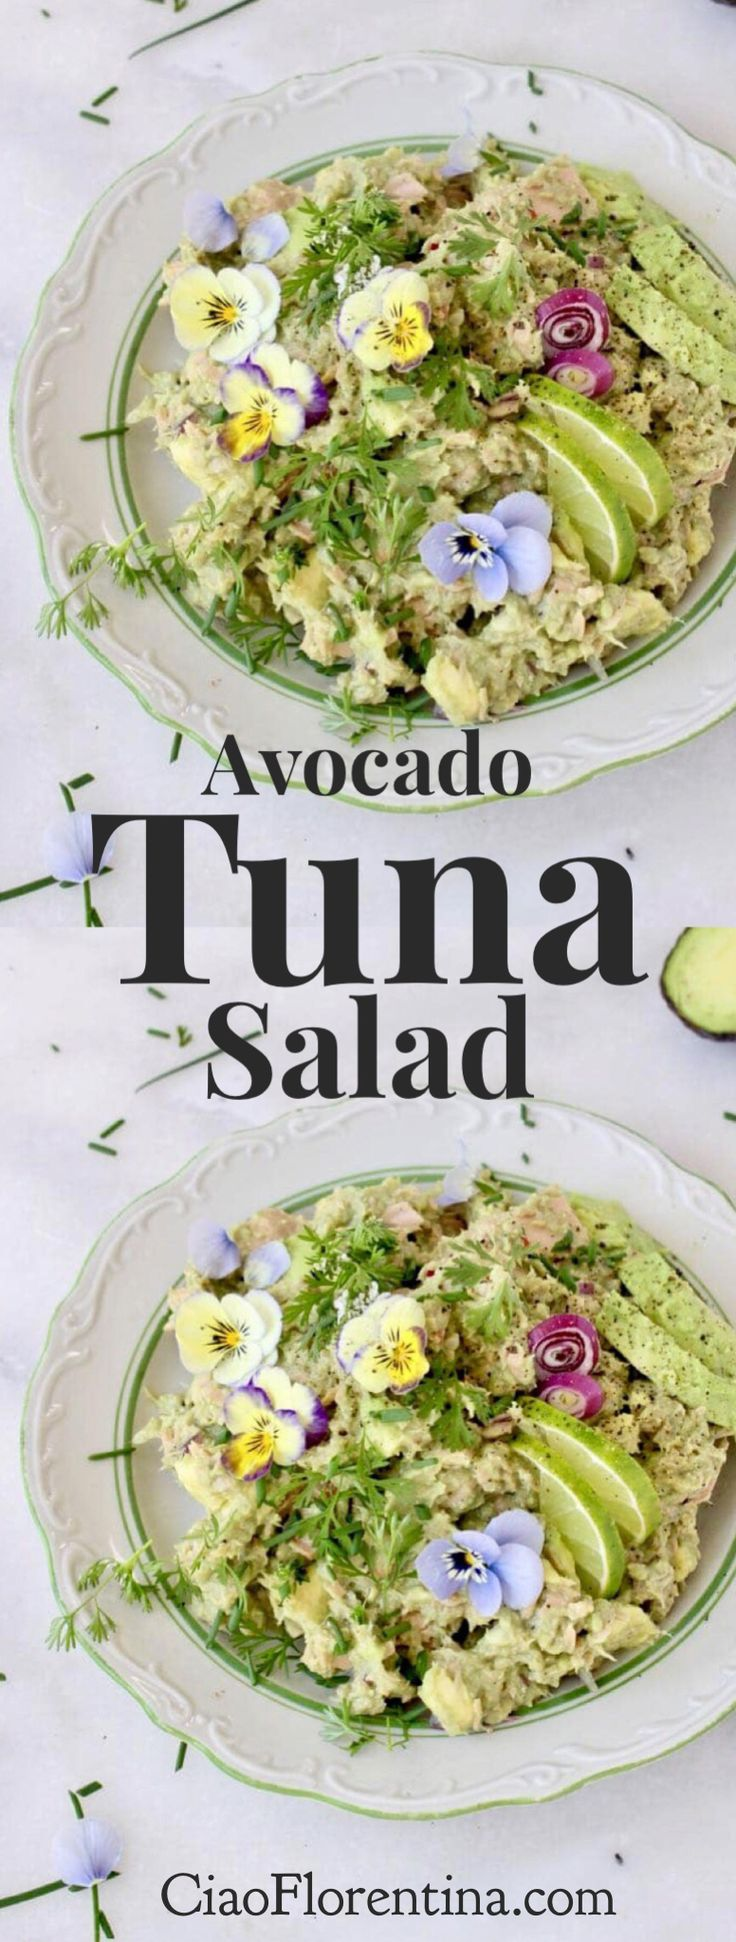 How to make the best avocado tuna salad, without mayo, just wild caught yellow fin tuna, creamy ripe avocados, zesty lime and your favorite herbs | CiaoFlorentina.com @CiaoFlorentina